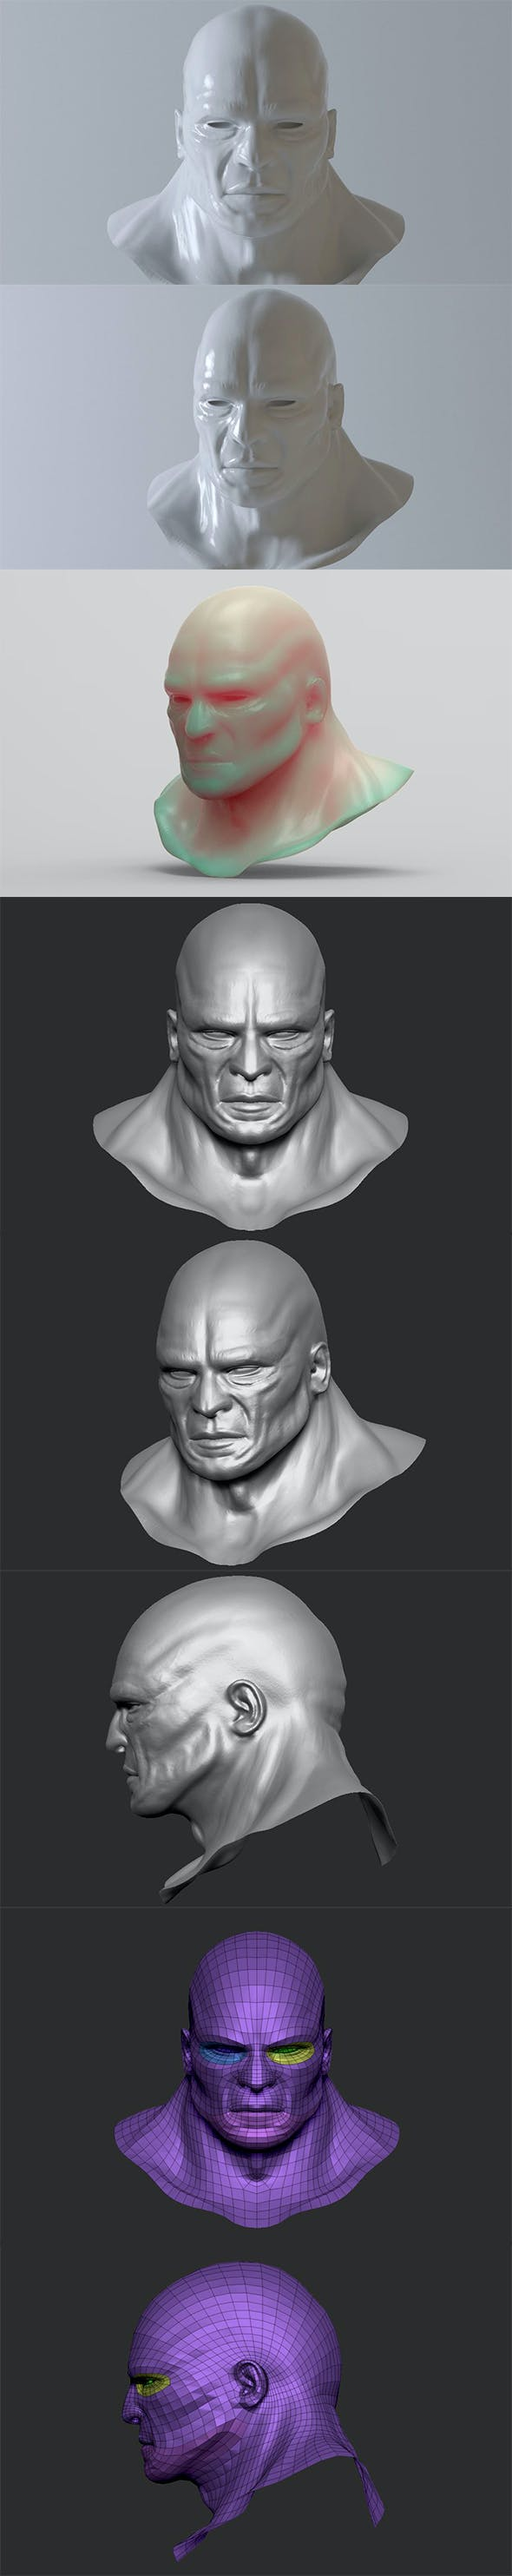 Head Man - base mesh - High and Low Poly - 3DOcean Item for Sale